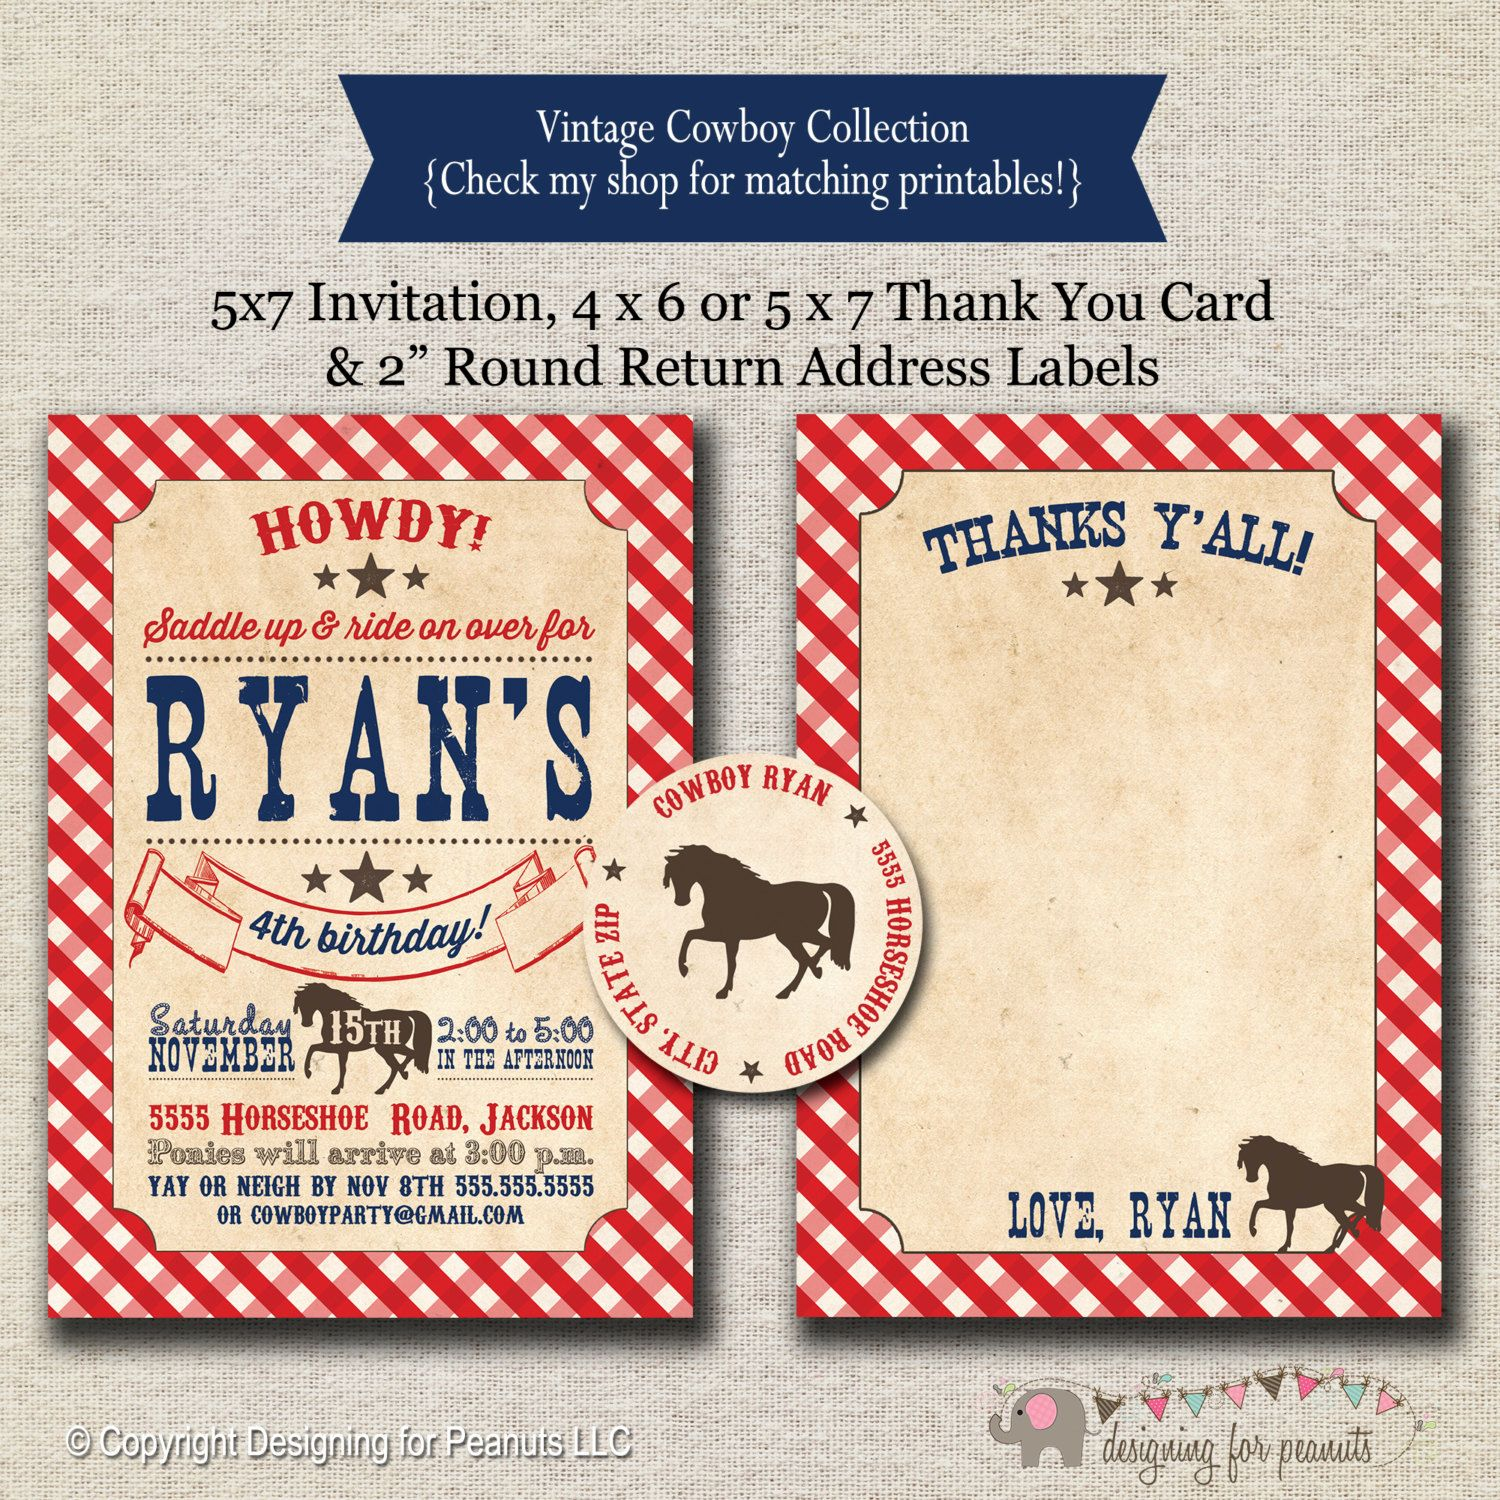 Cowboy Invitation, Thank You Card, Return Address Labels  Red